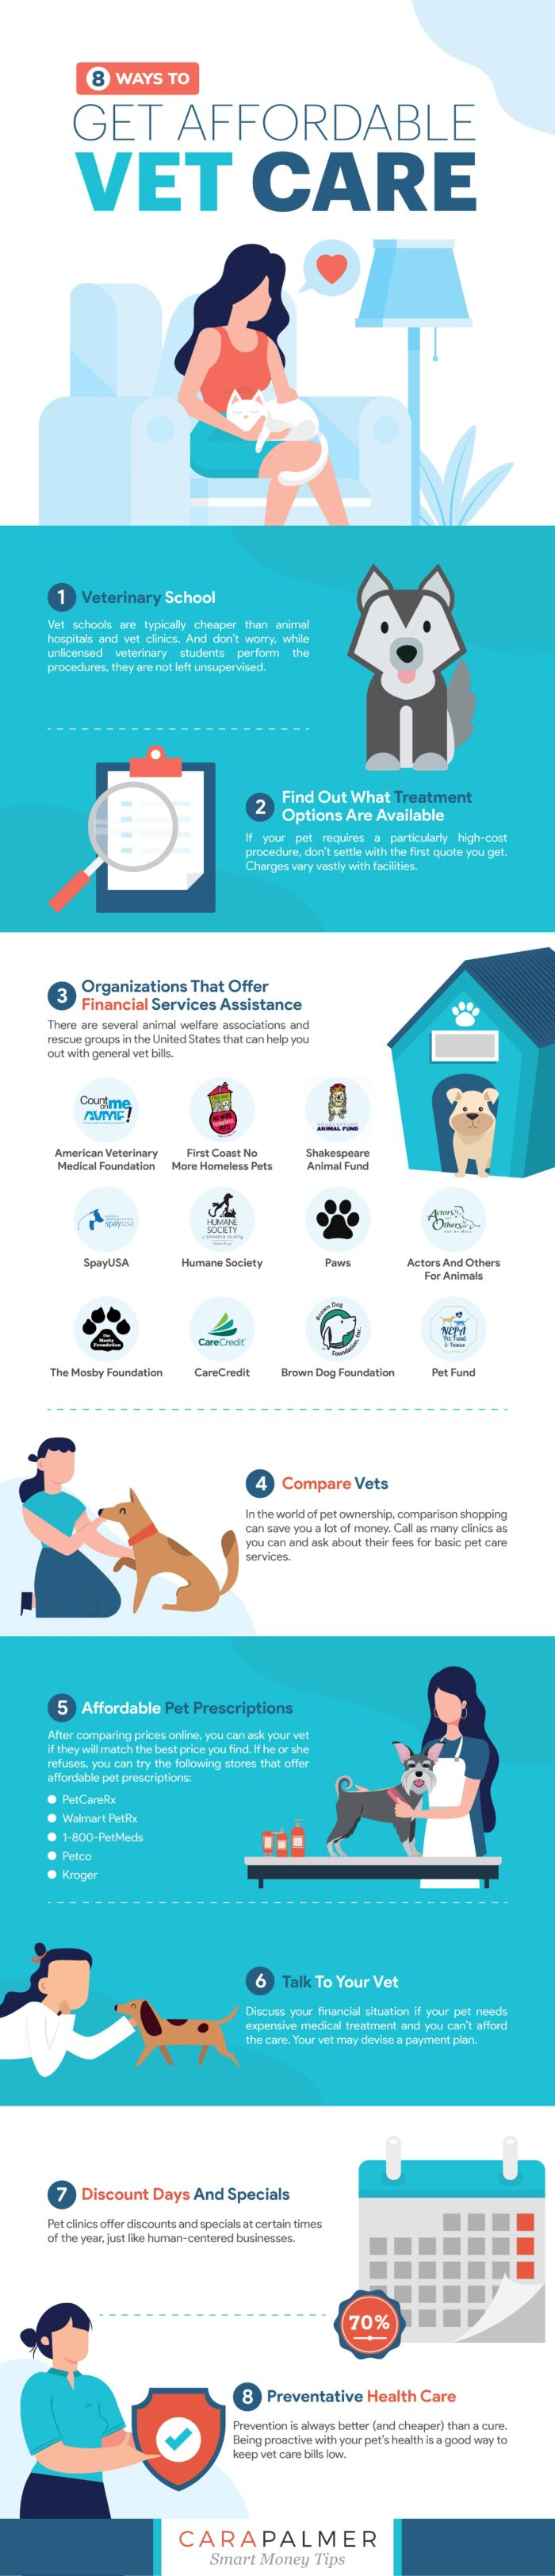 8 Ways To Get Affordable Vet Care Infographic